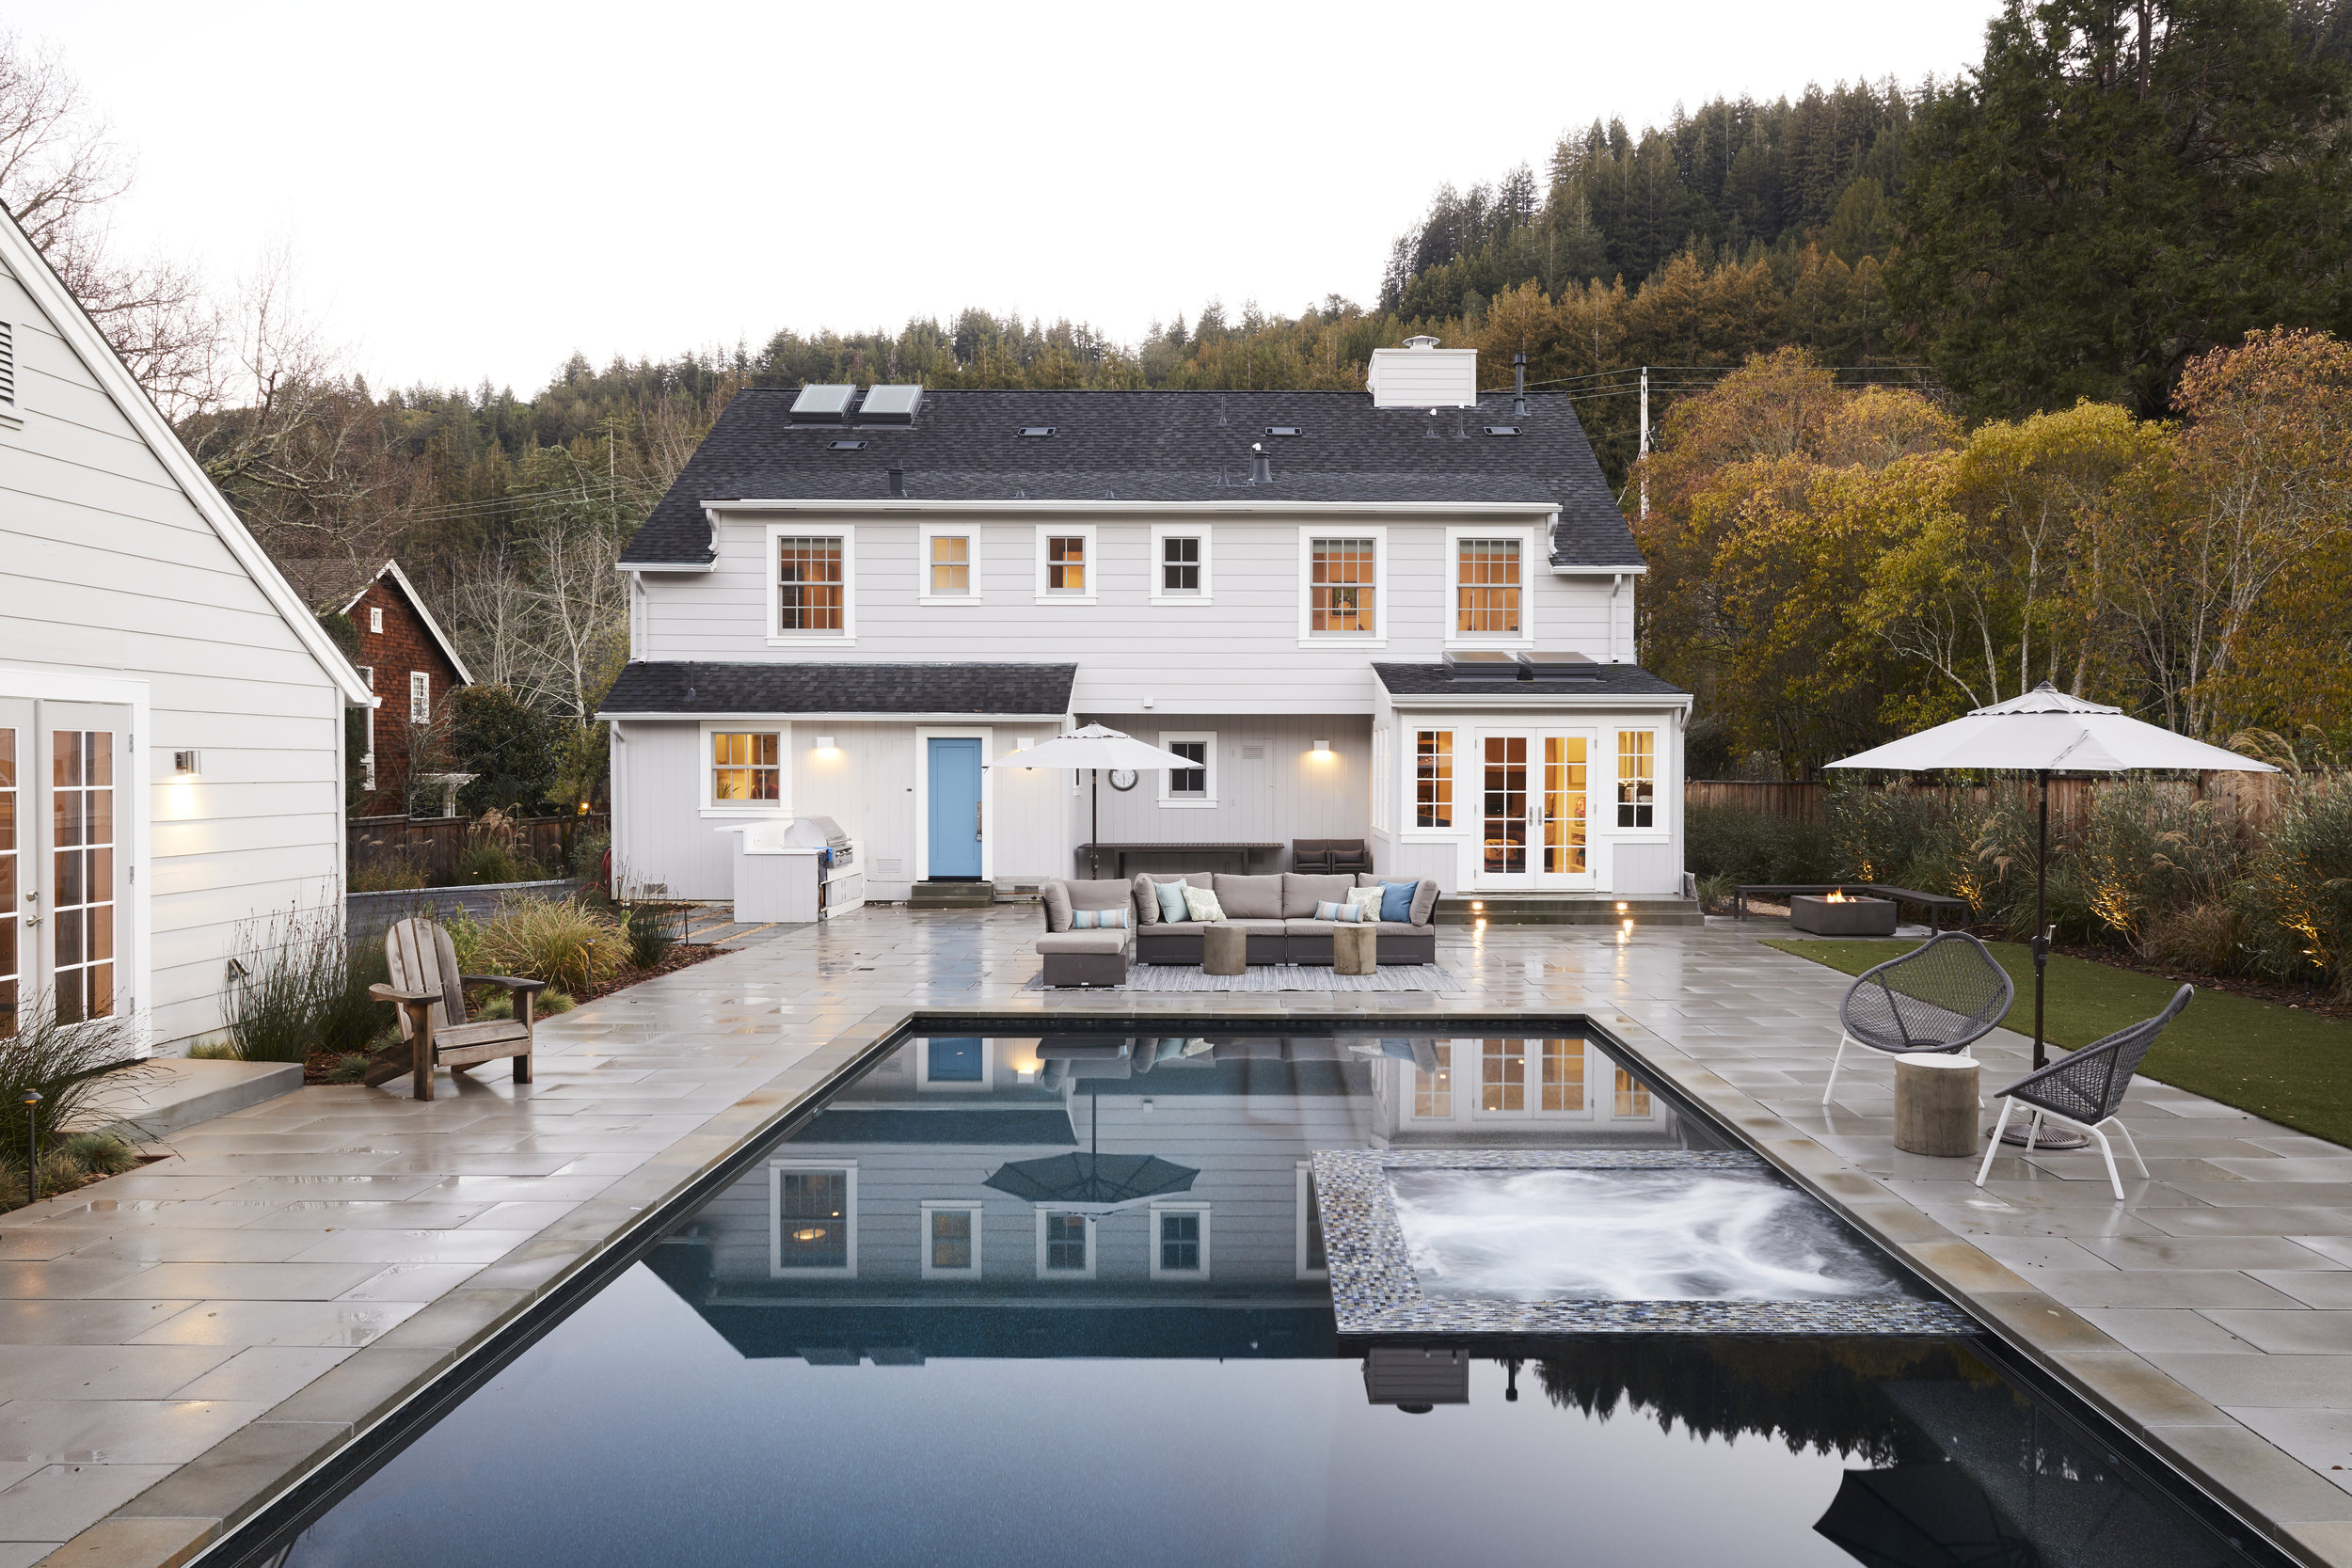 Complete renovation of a 4500 sqft, 5 bed, 3.5 bath home in Marin, CA